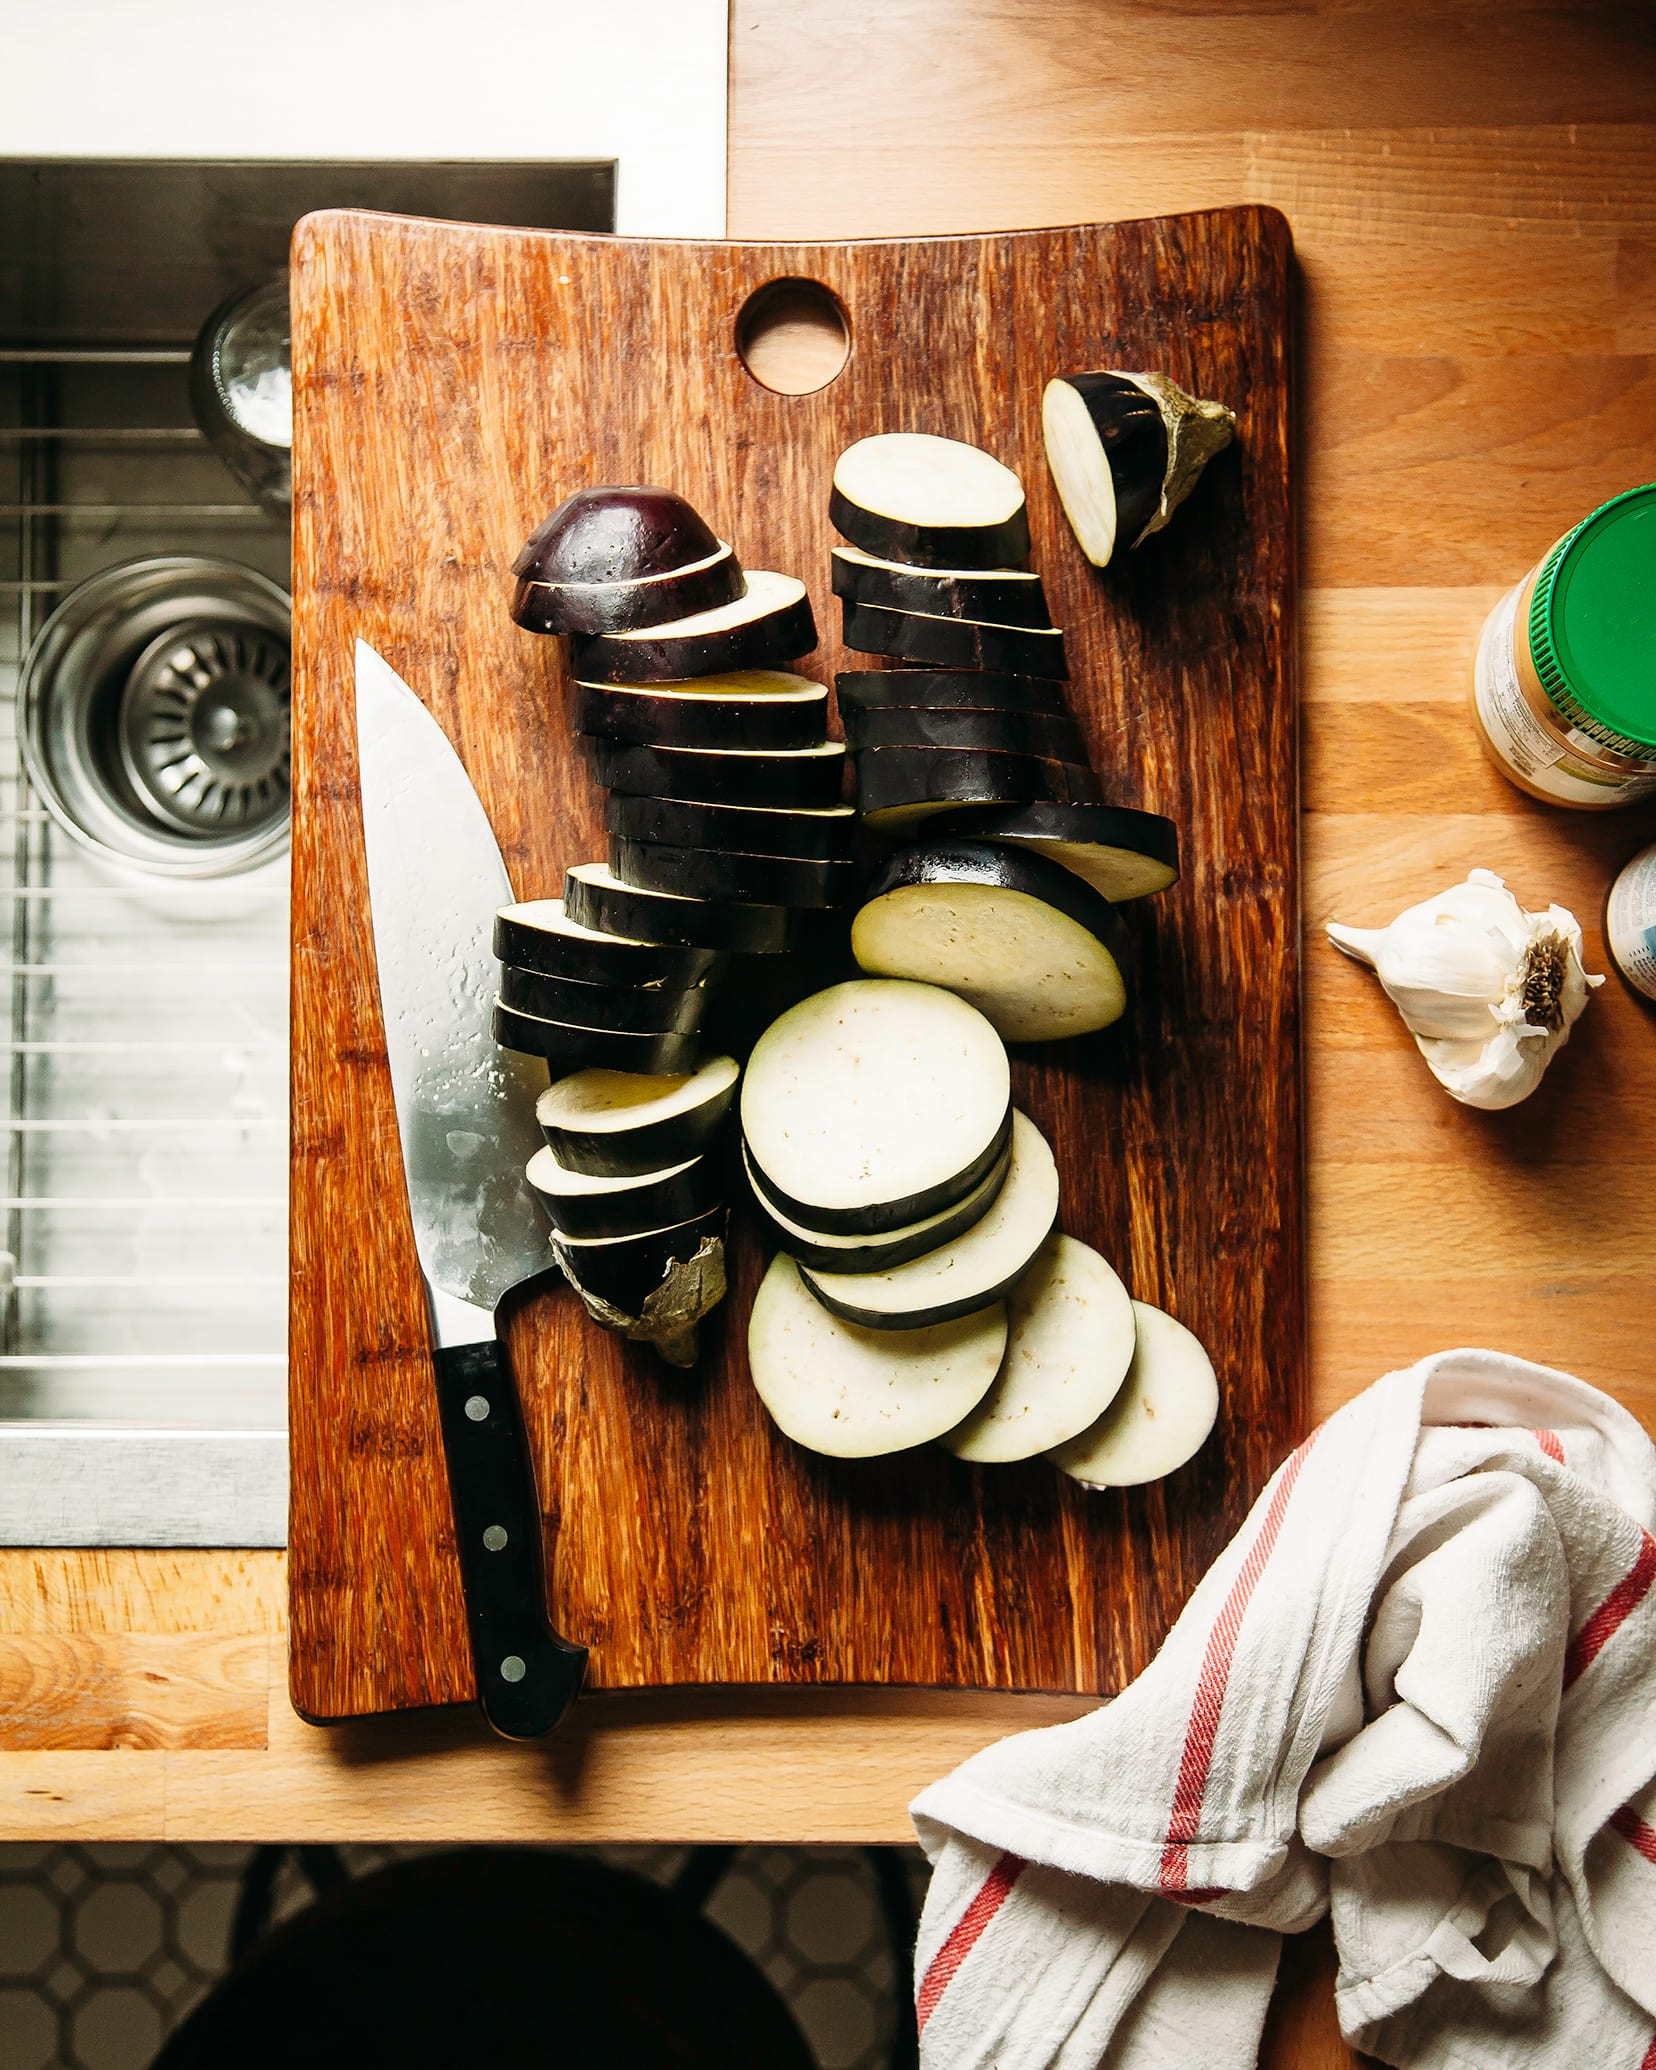 An overhead shot of two sliced eggplants on a wooden cutting board on top of a kitchen counter.